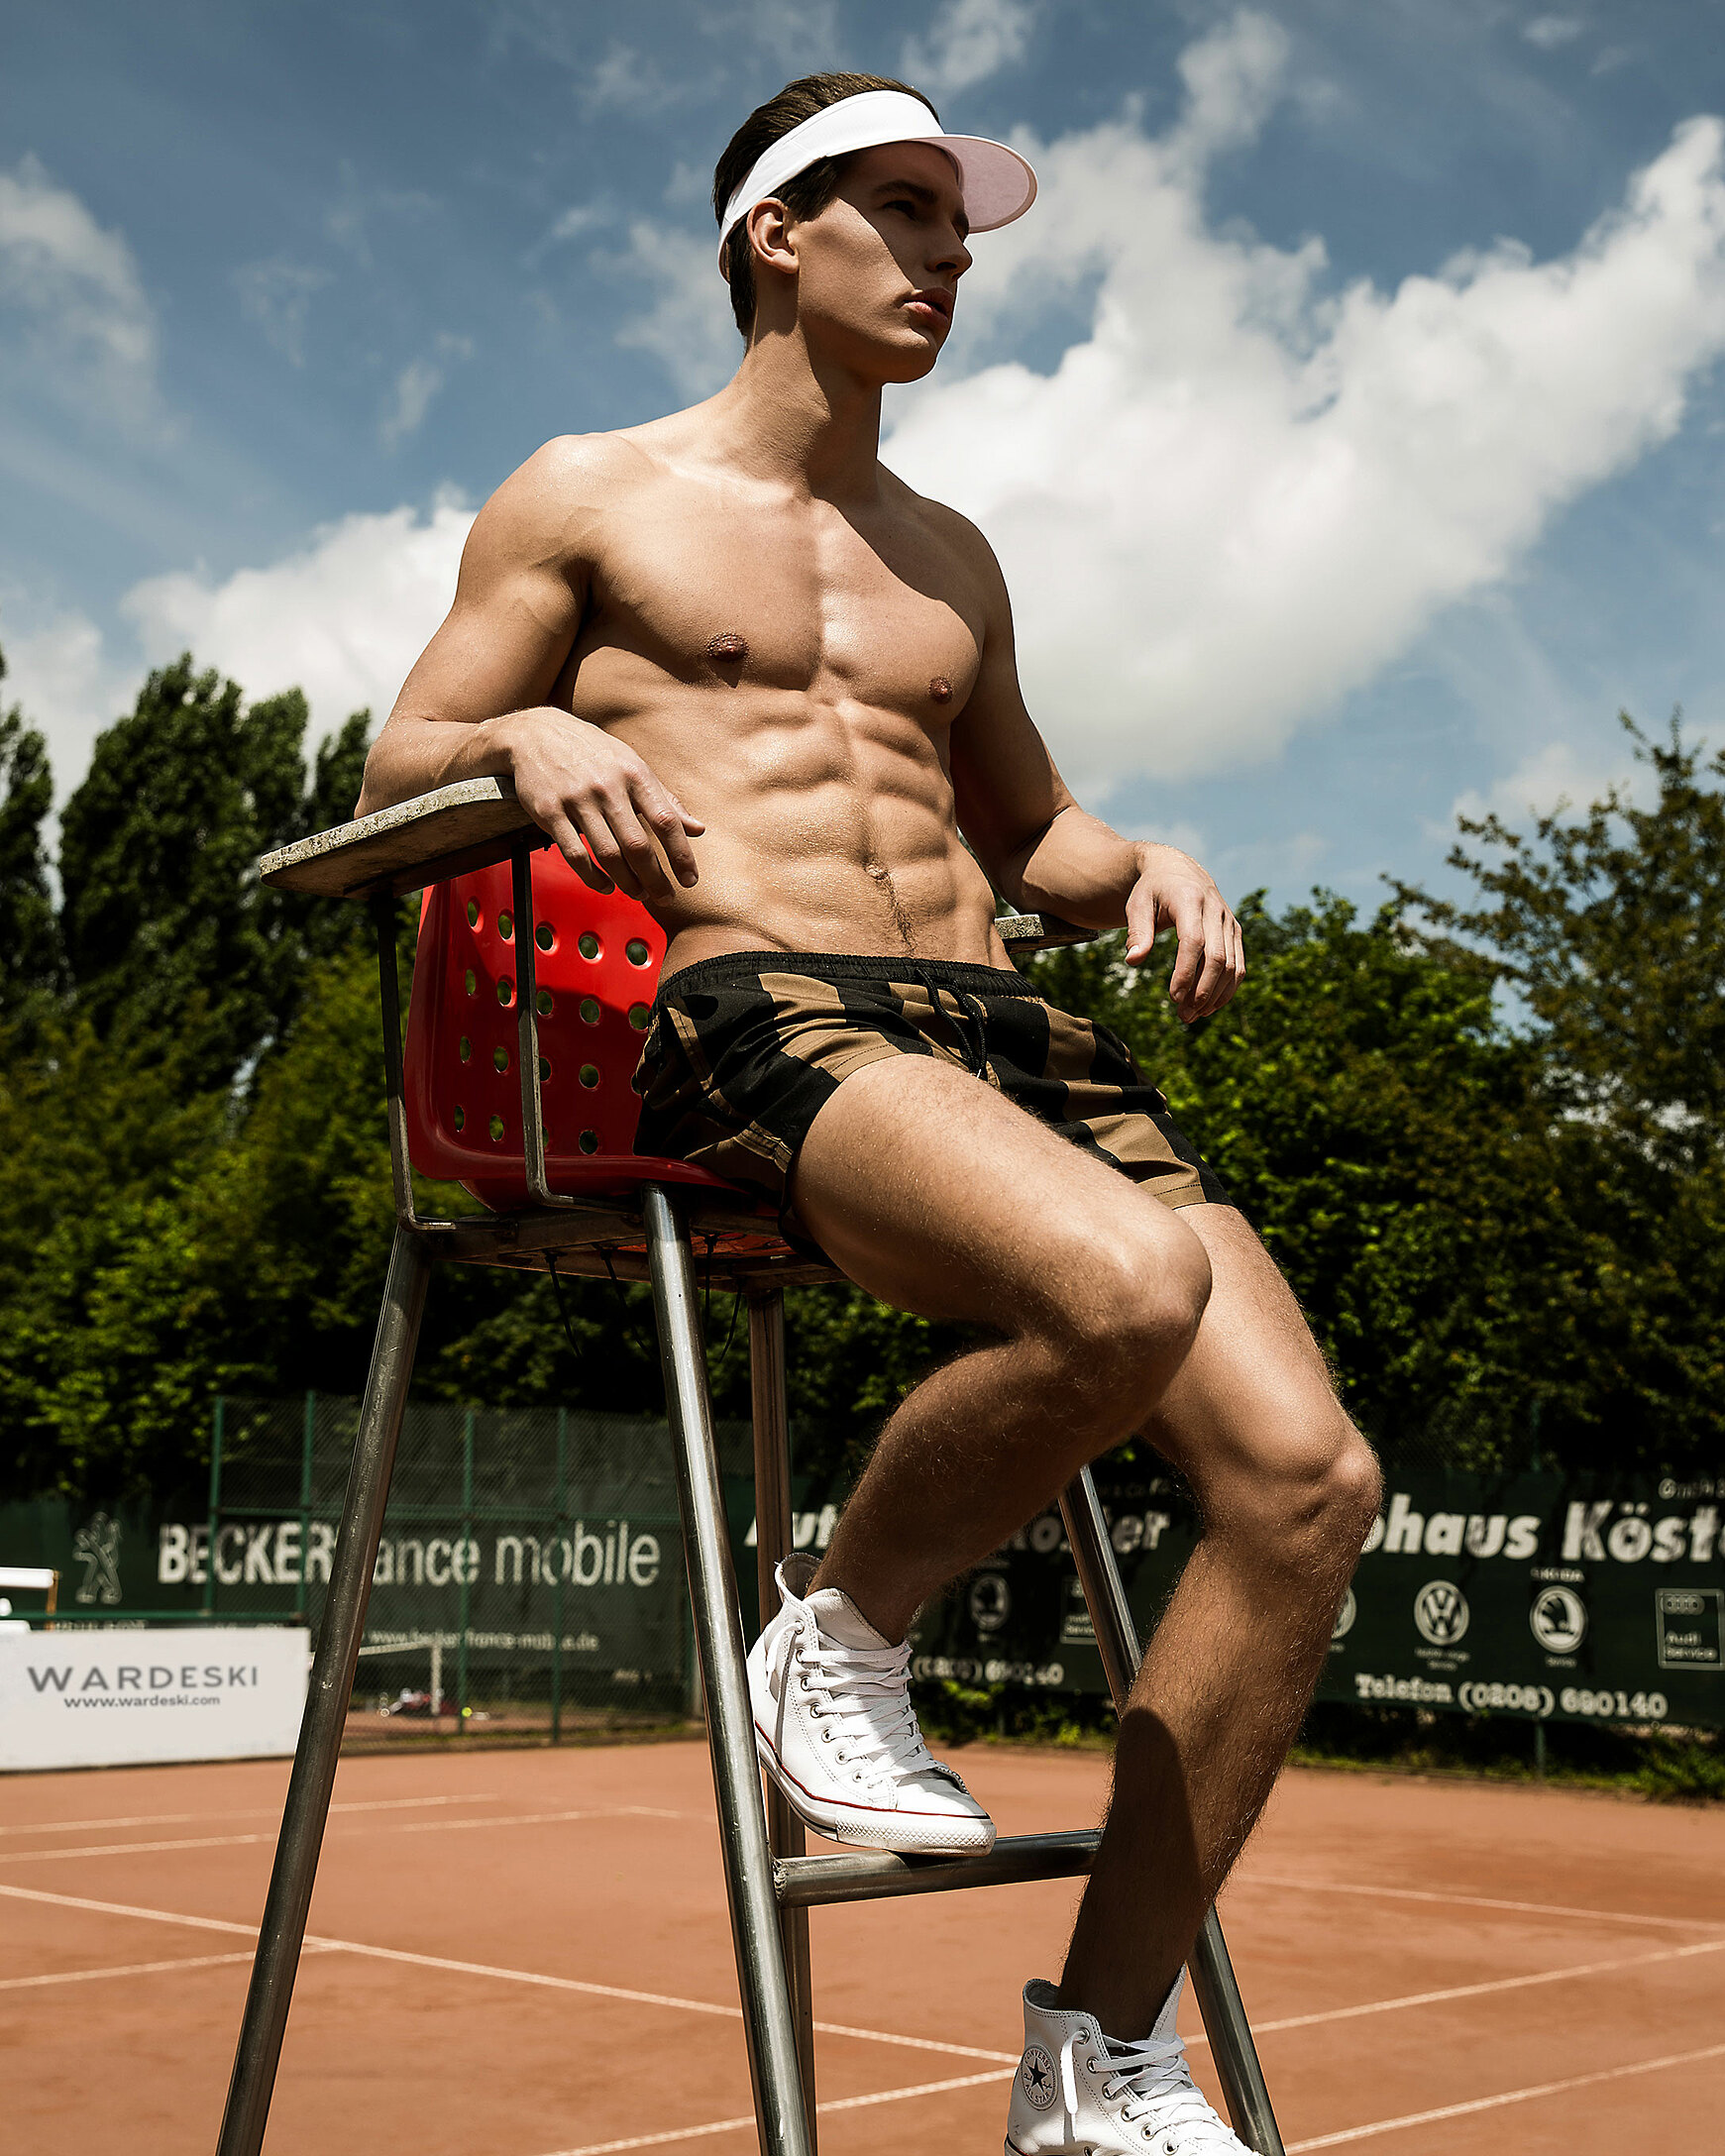 A male model who sit on a red high chair in the middle of the tennis court with a white sunscreen around his head and white chucks. He wears black brown shorts with stripes